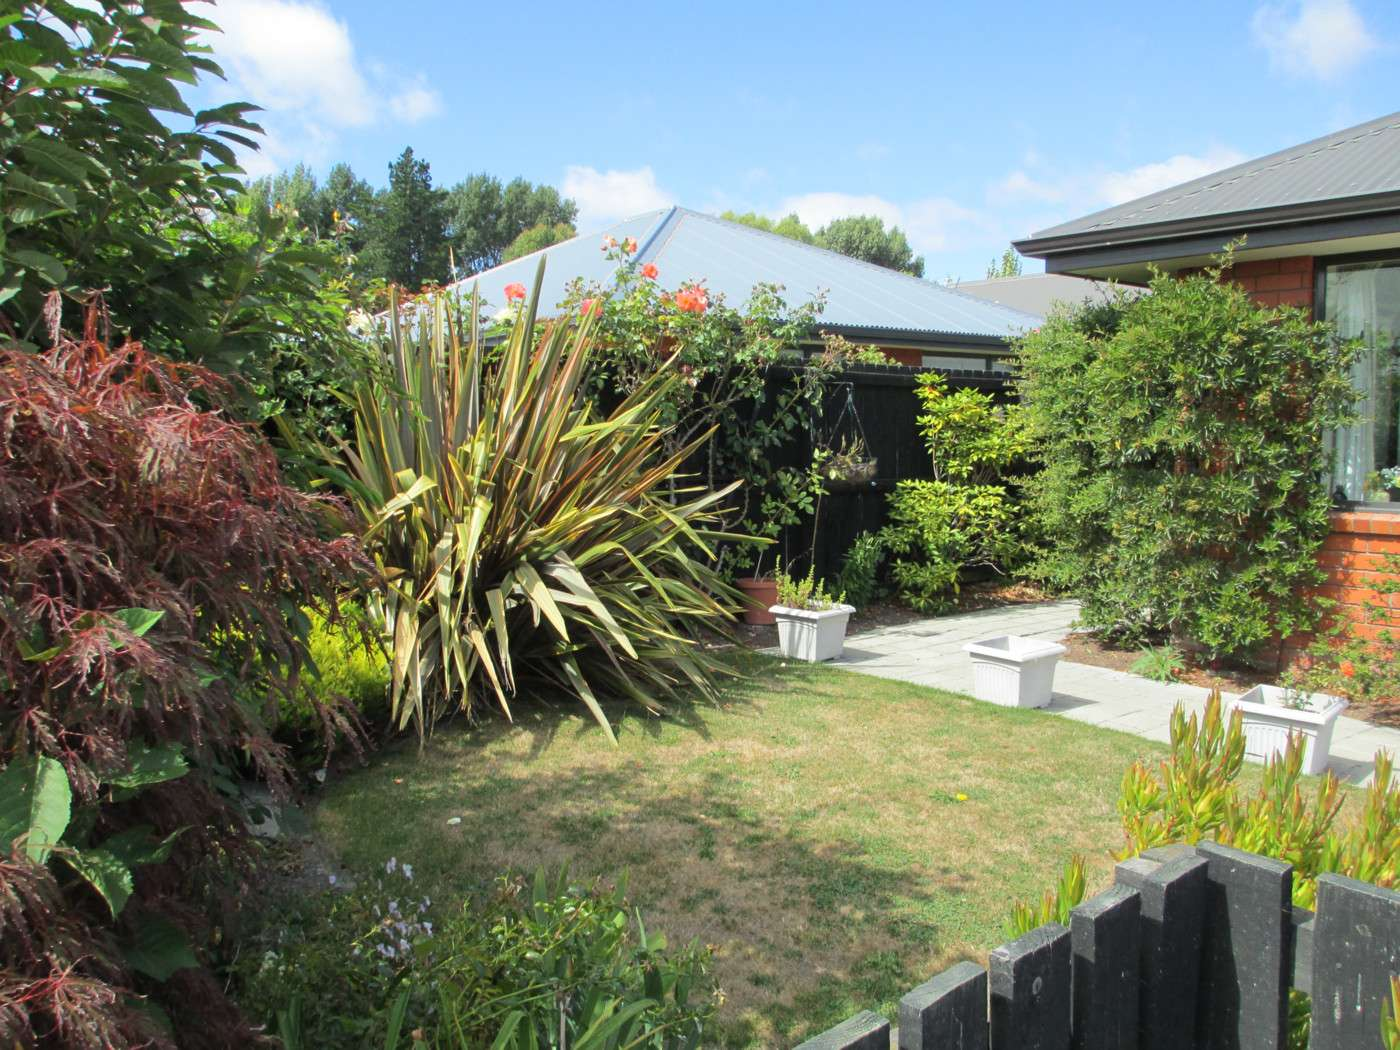 over+60s+units+christchurch+for+rent